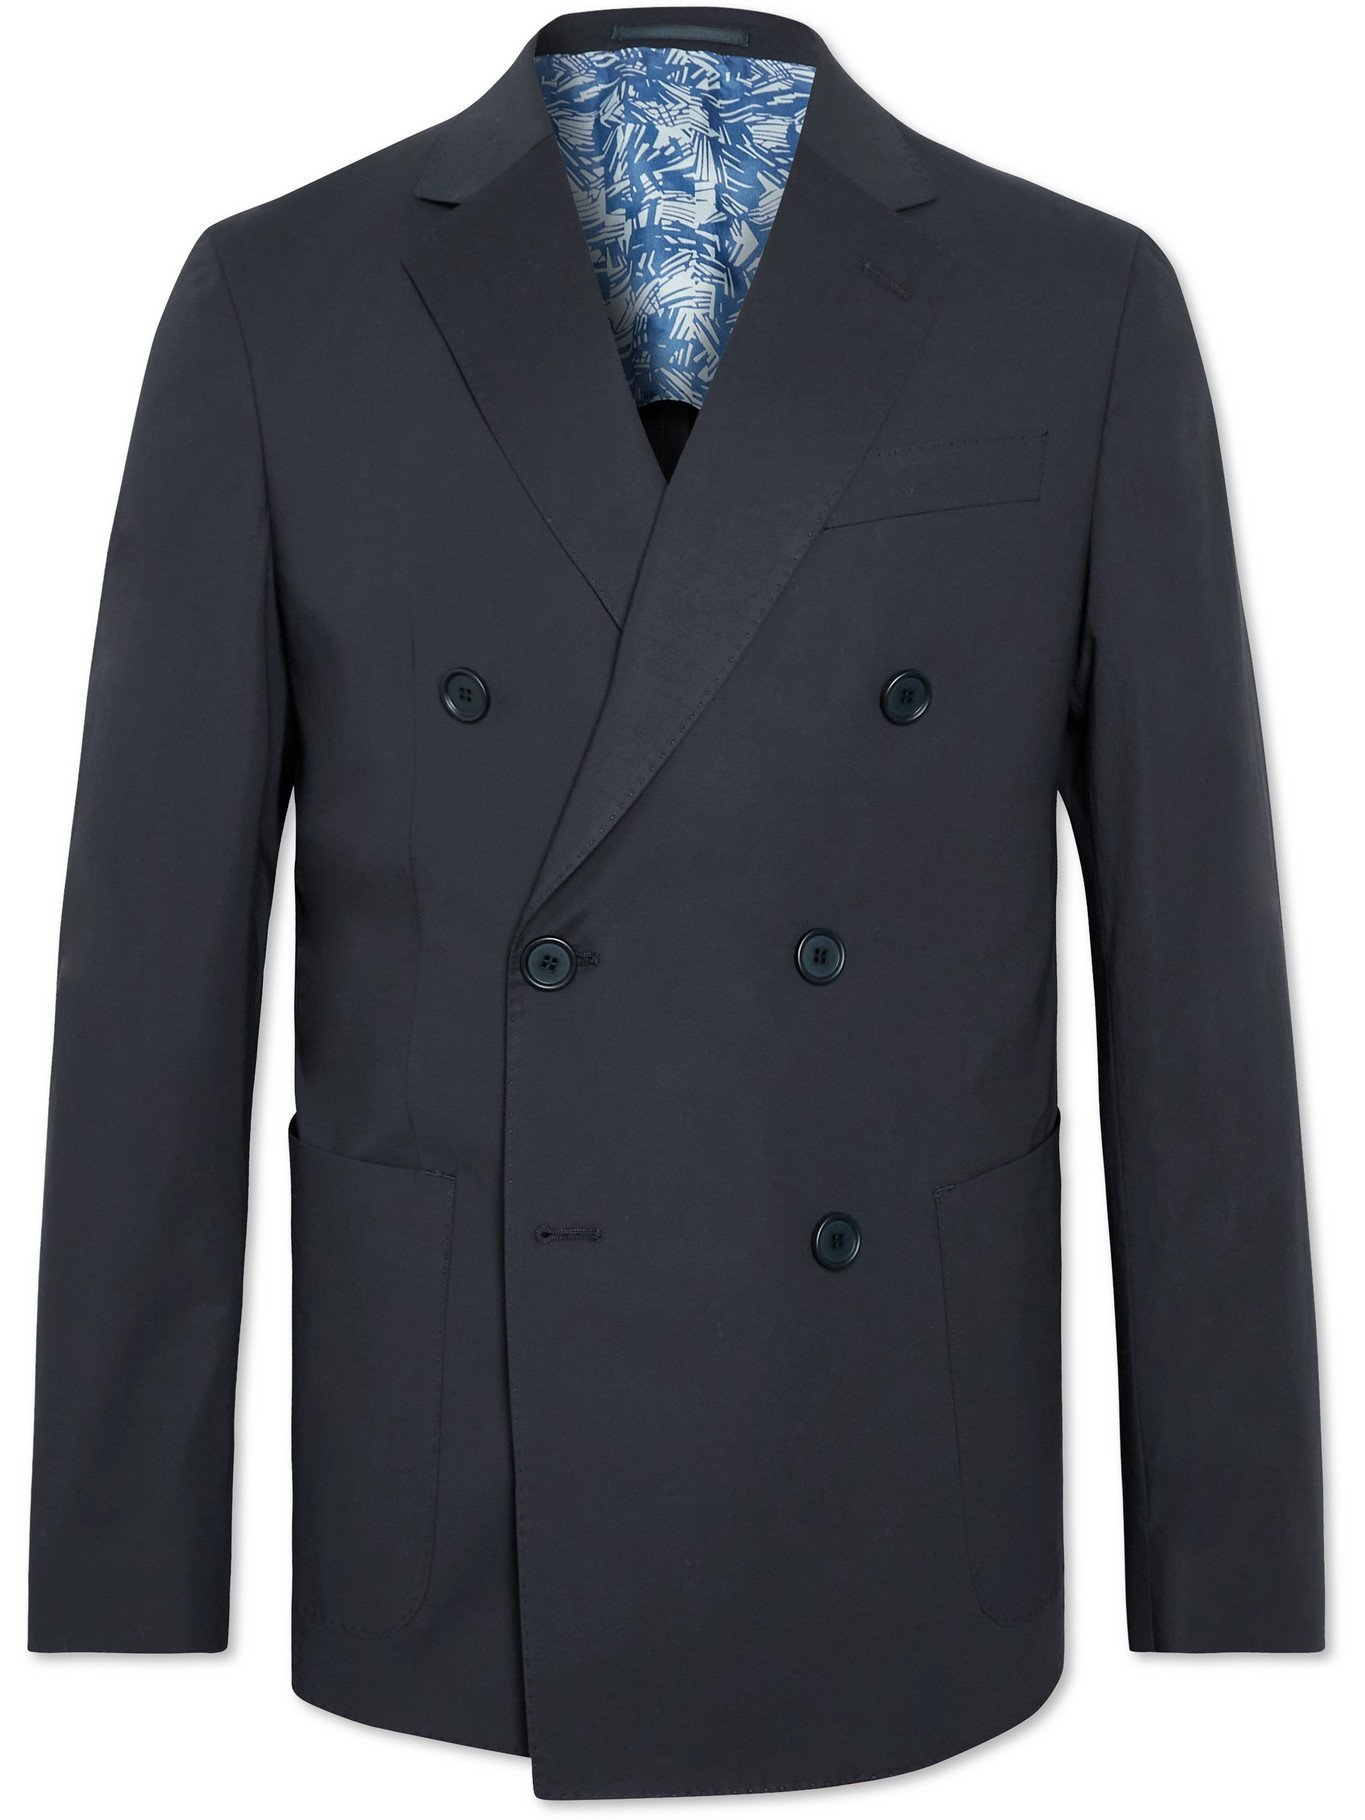 HUGO BOSS - Double-Breasted Cotton-Blend Suit Jacket - Blue